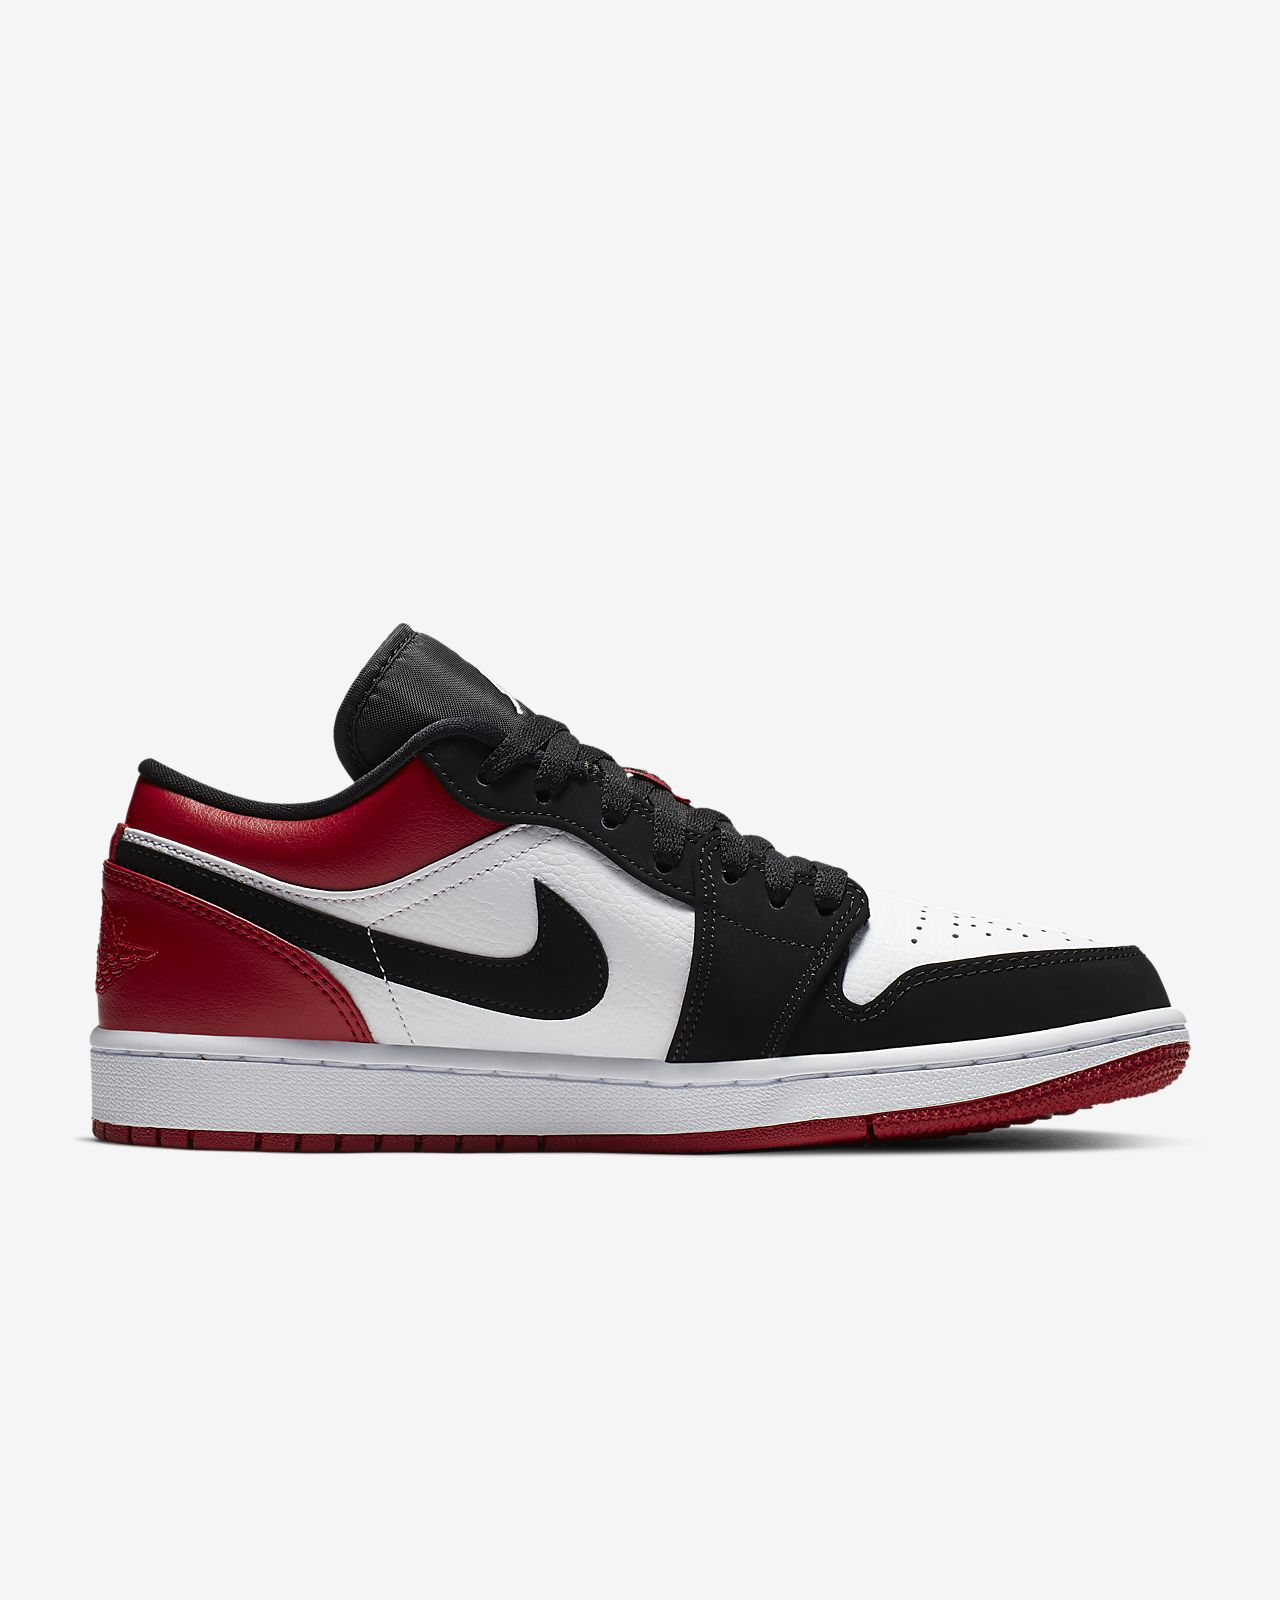 premium selection 6daa6 409c4 ... Air Jordan 1 Low Men s Shoe